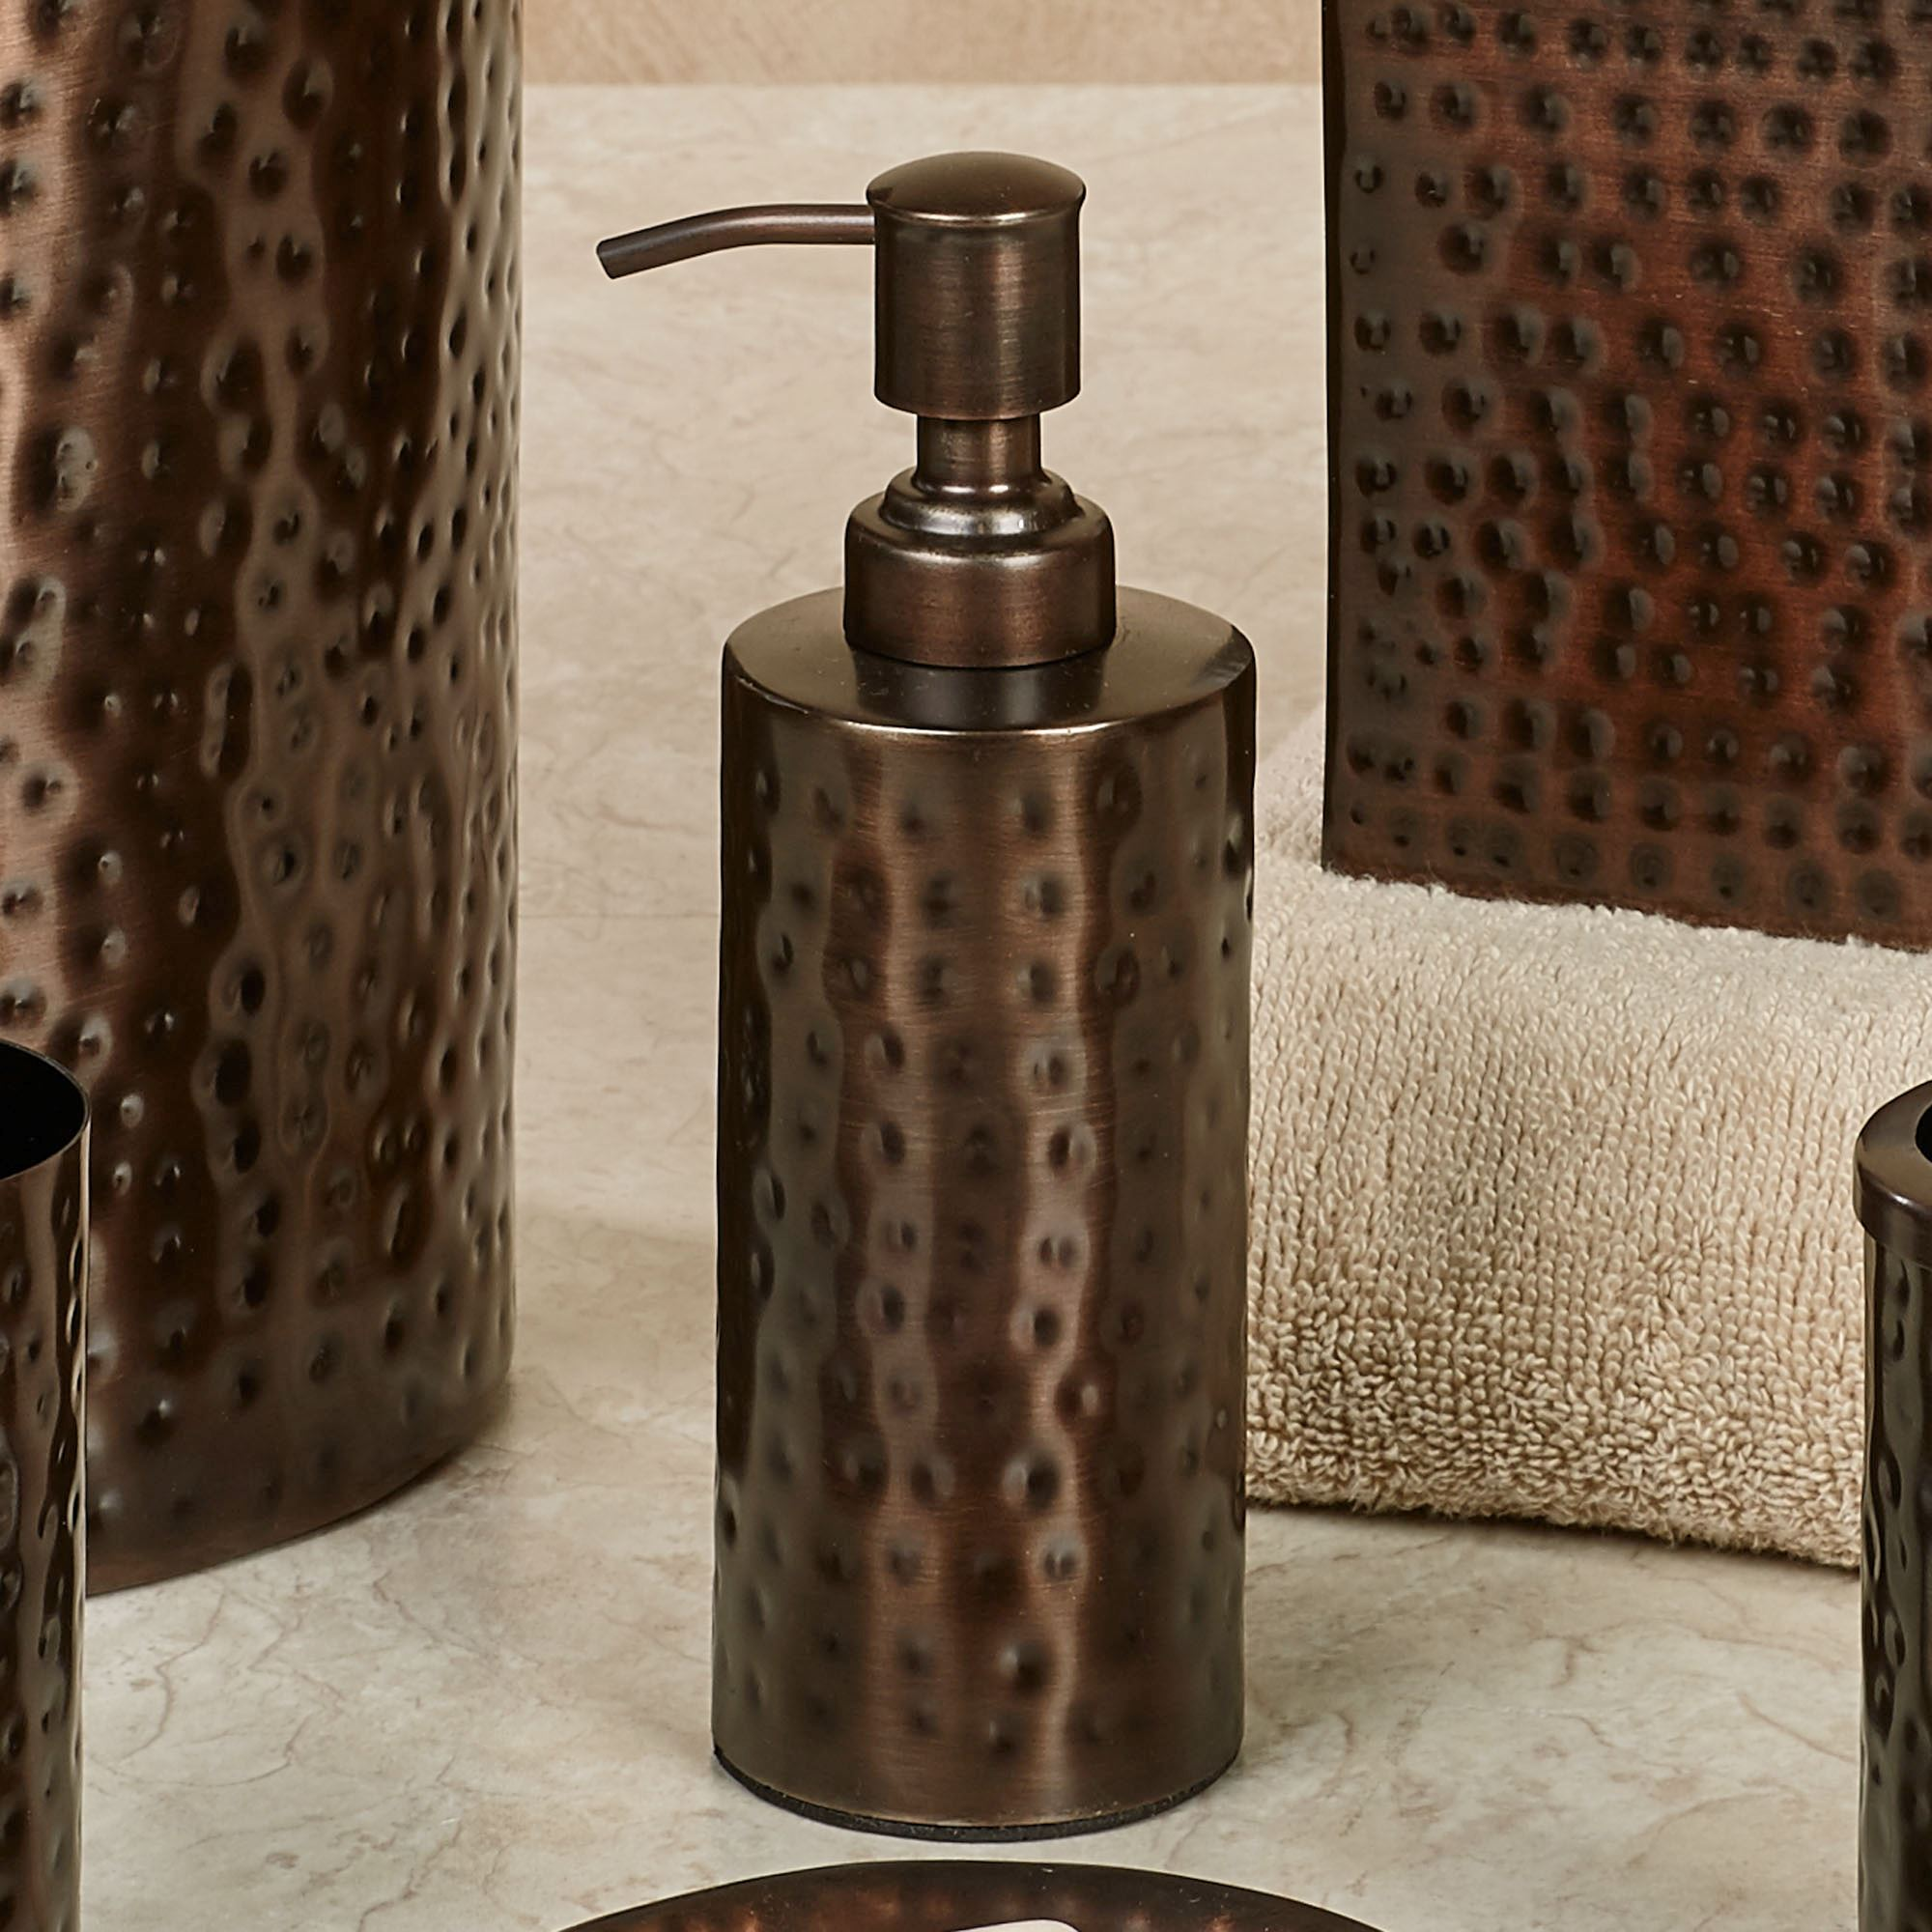 Pressed Metal Lotion Soap Dispenser Oil Rubbed Bronze